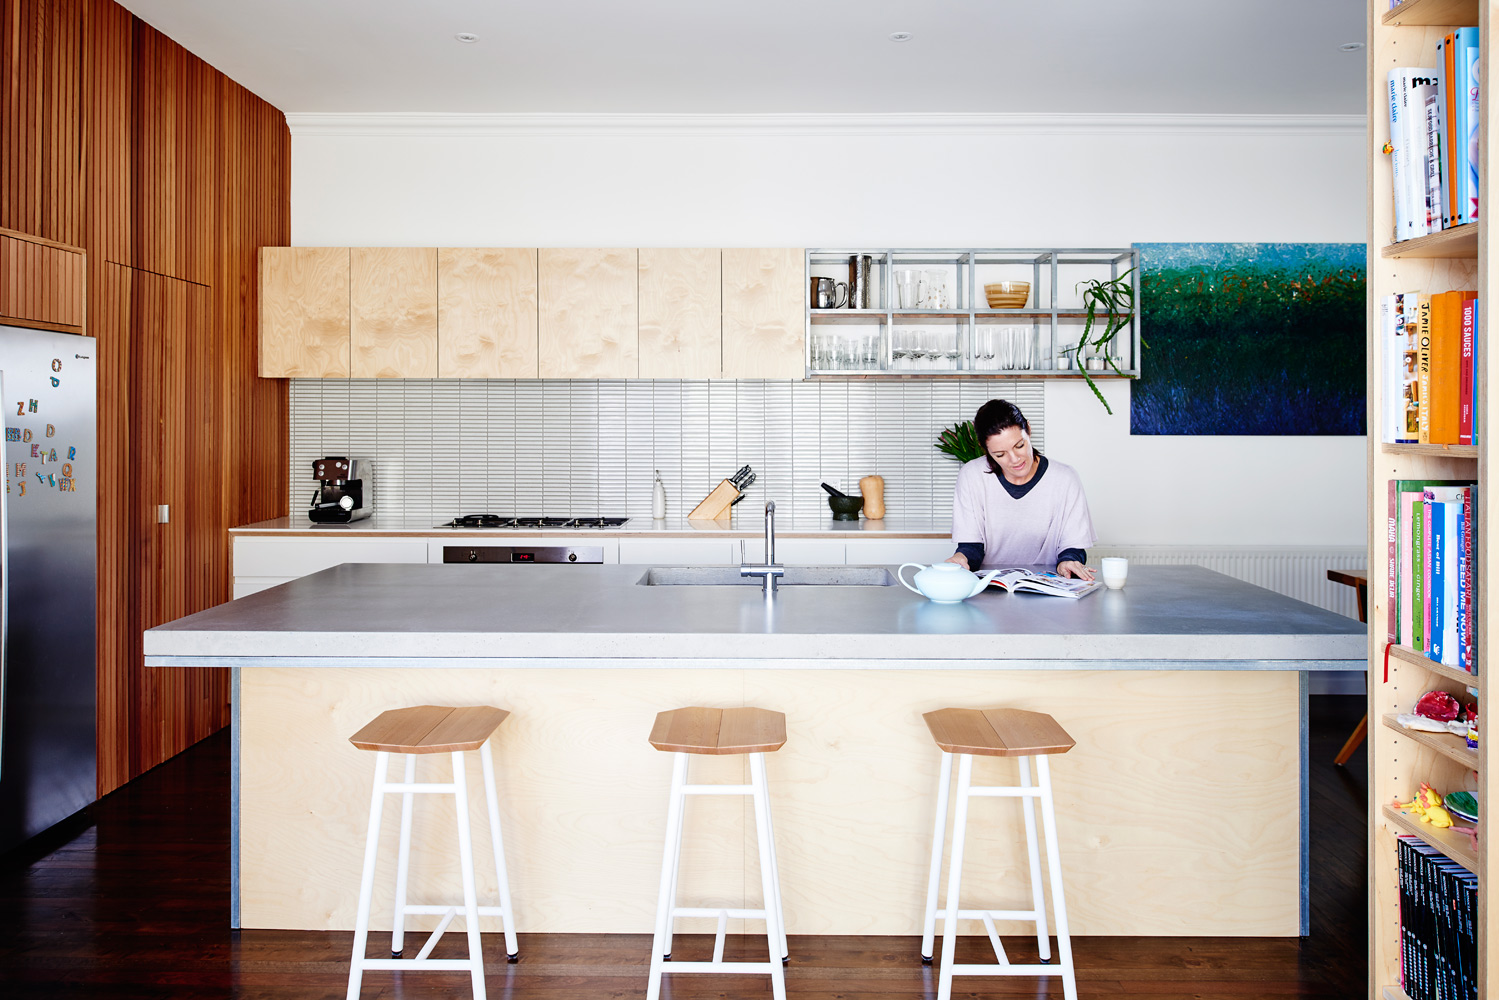 Brighton East Interior - Australian Timber Detailing Kitchen - Dan Gayfer Design - Interior Archive